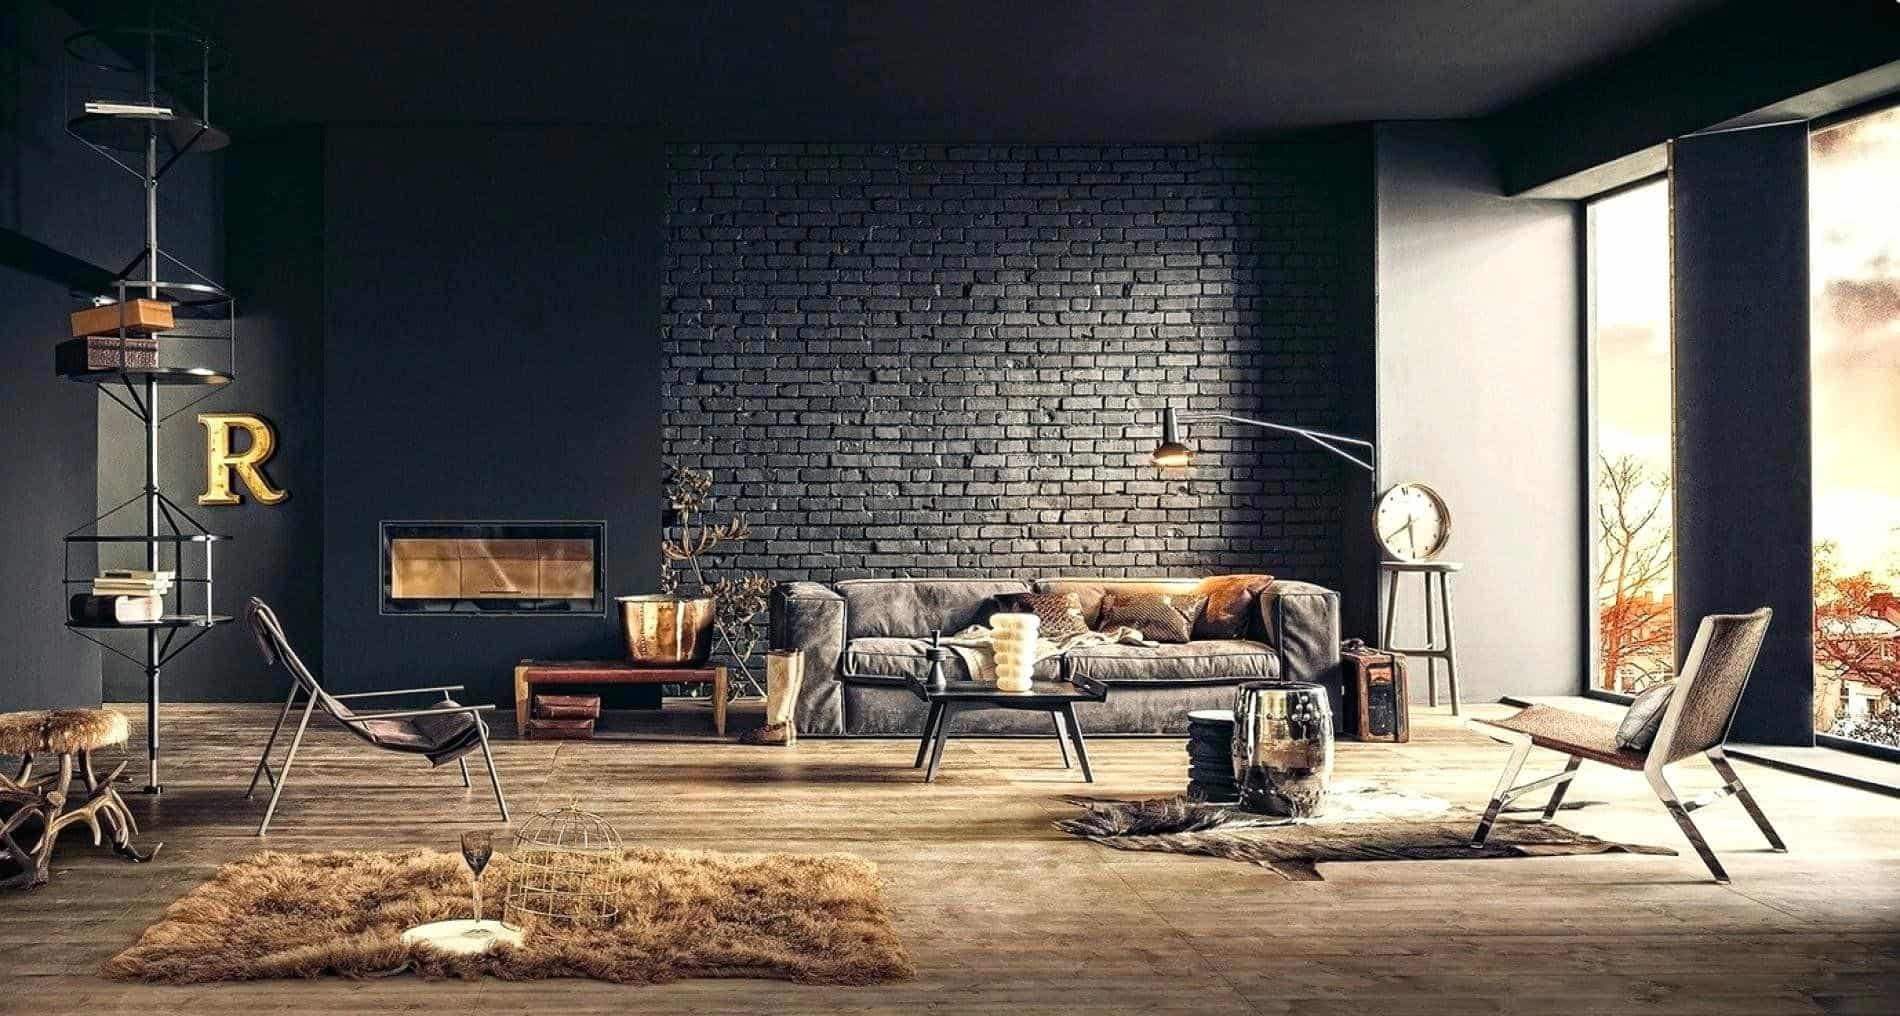 Terrific Rustic Industrial Living Room Ideas To Inspire Download Free Architecture Designs Scobabritishbridgeorg